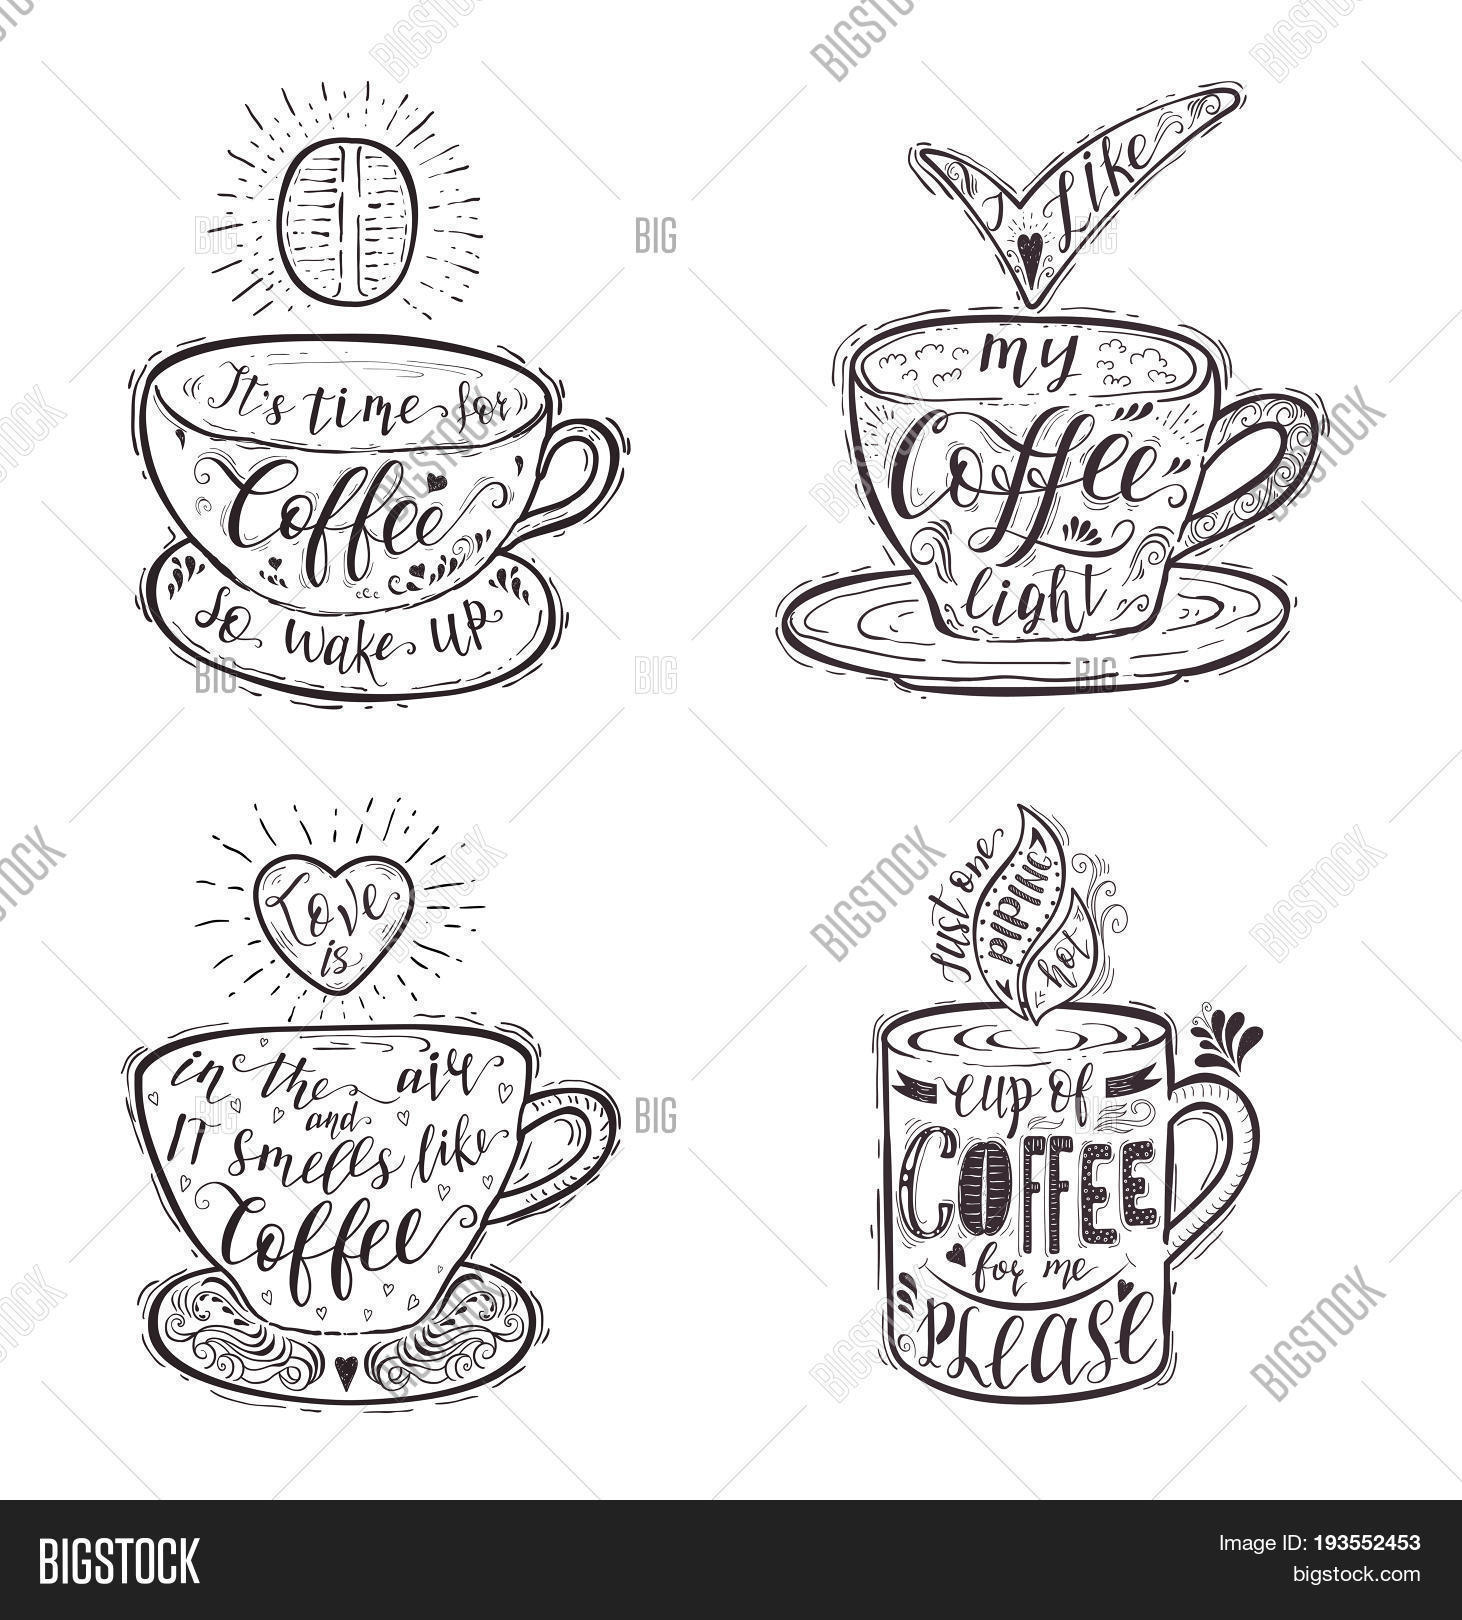 Set Quotes Coffee On Image Photo Free Trial Bigstock